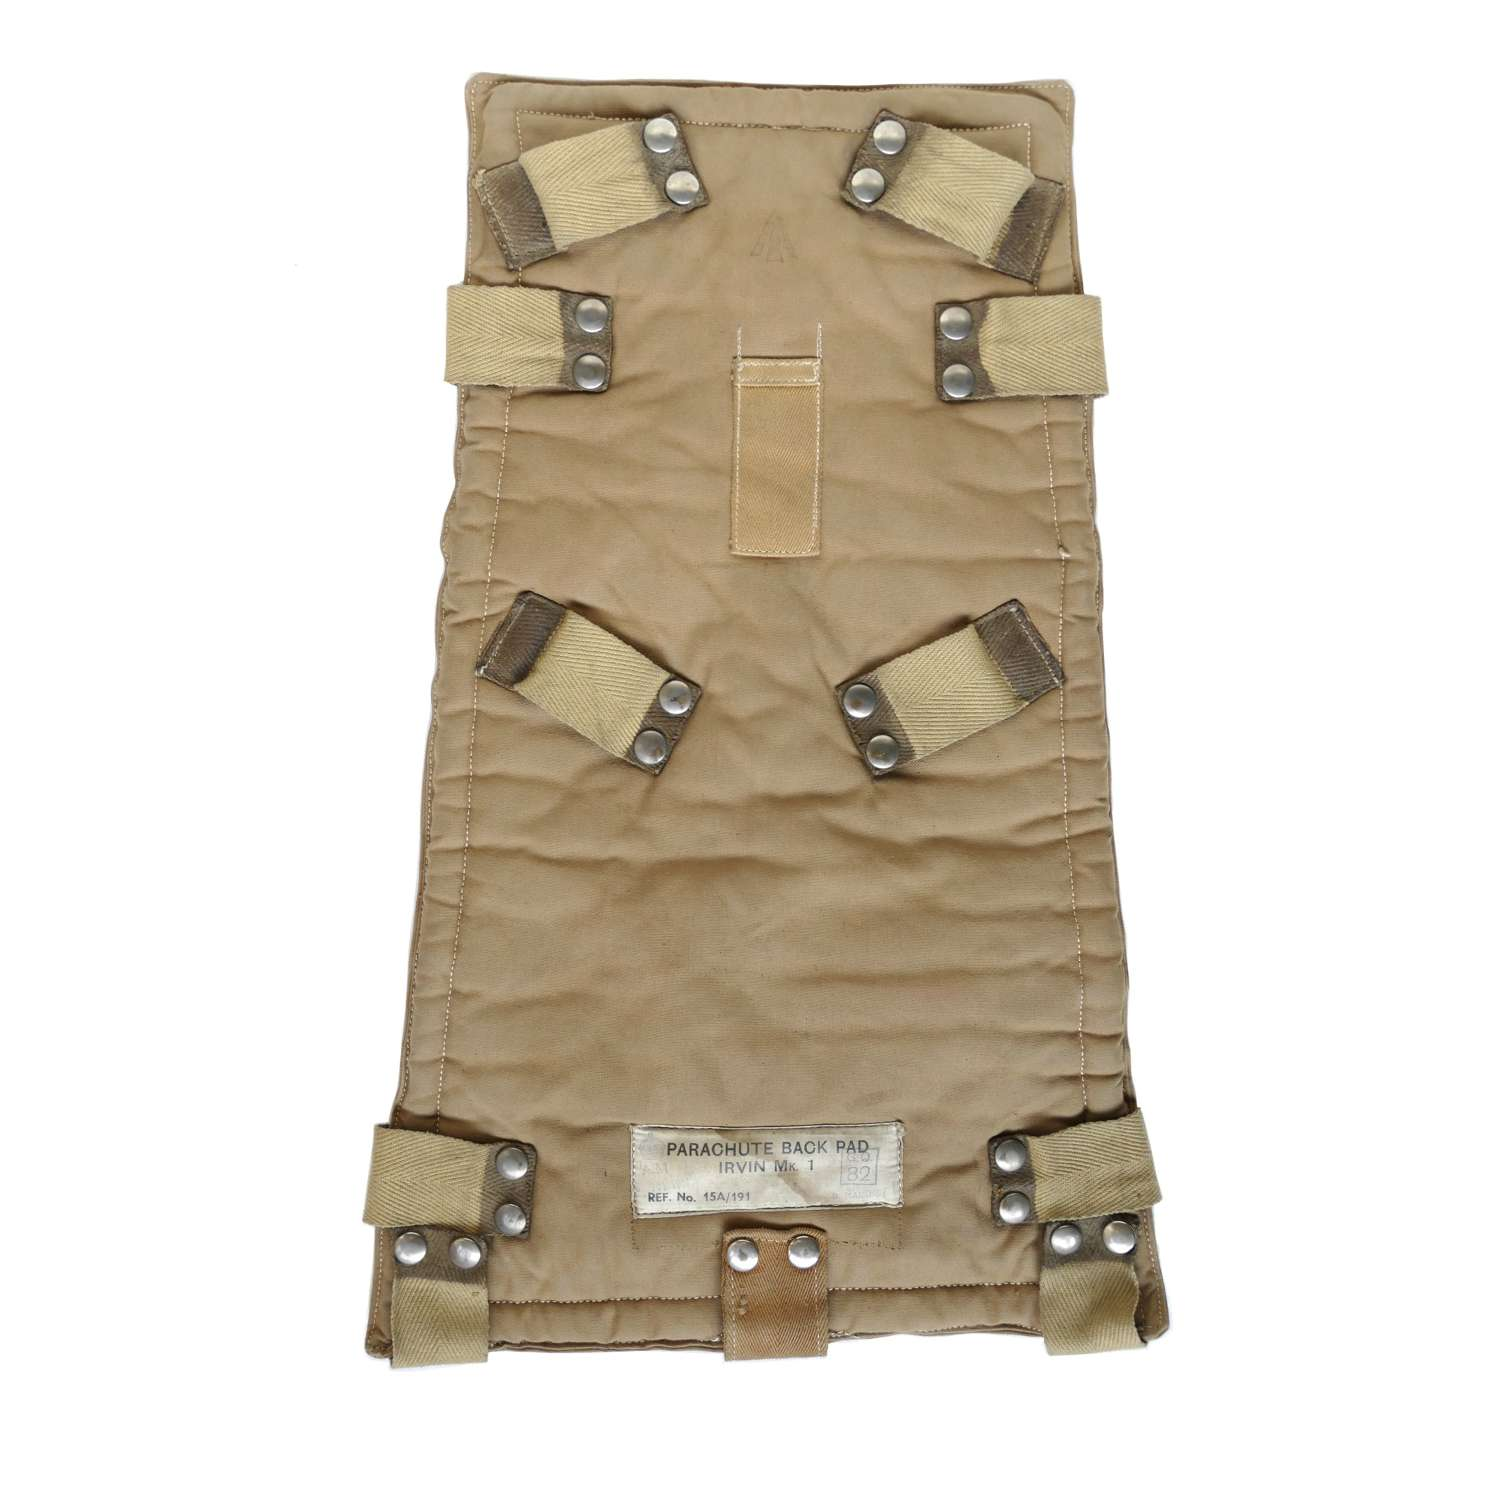 RAF parachute harness backpad